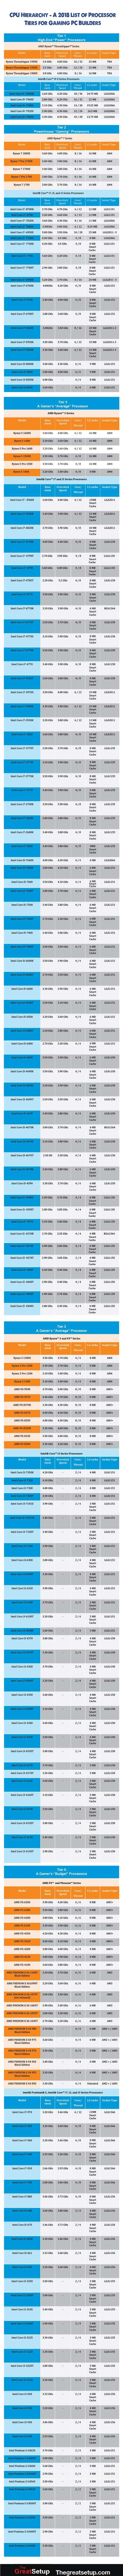 Cpu Hierarchy A 2020 List Of Processor Tiers For Gaming Pc Builders